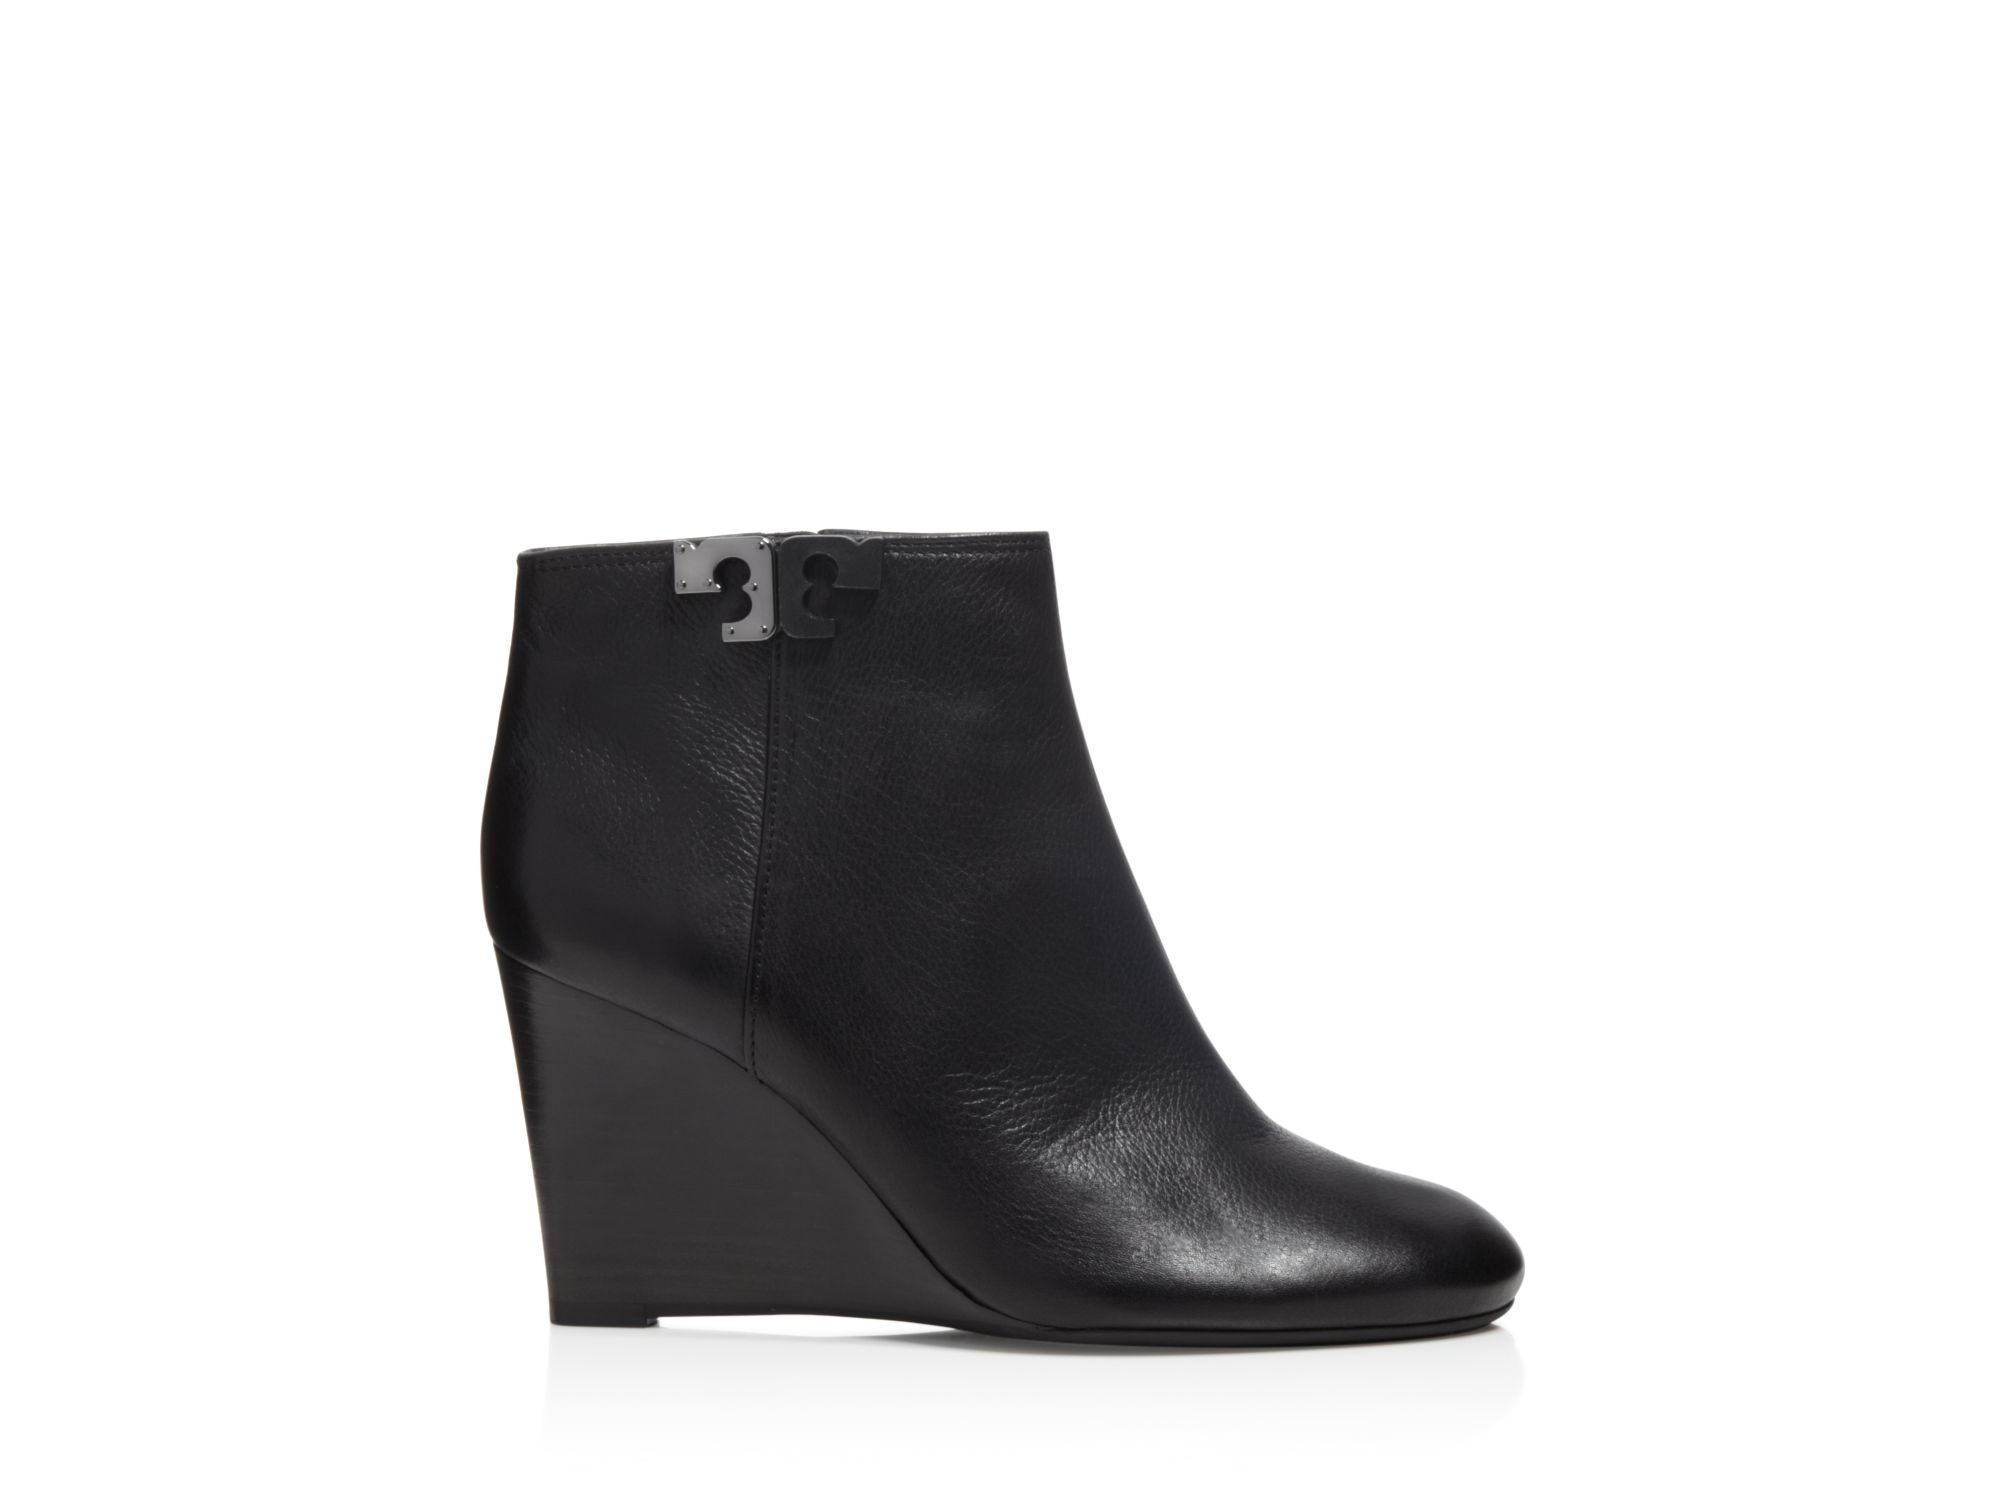 3671701f6613 Lyst - Tory Burch Lowell Wedge Booties in Black